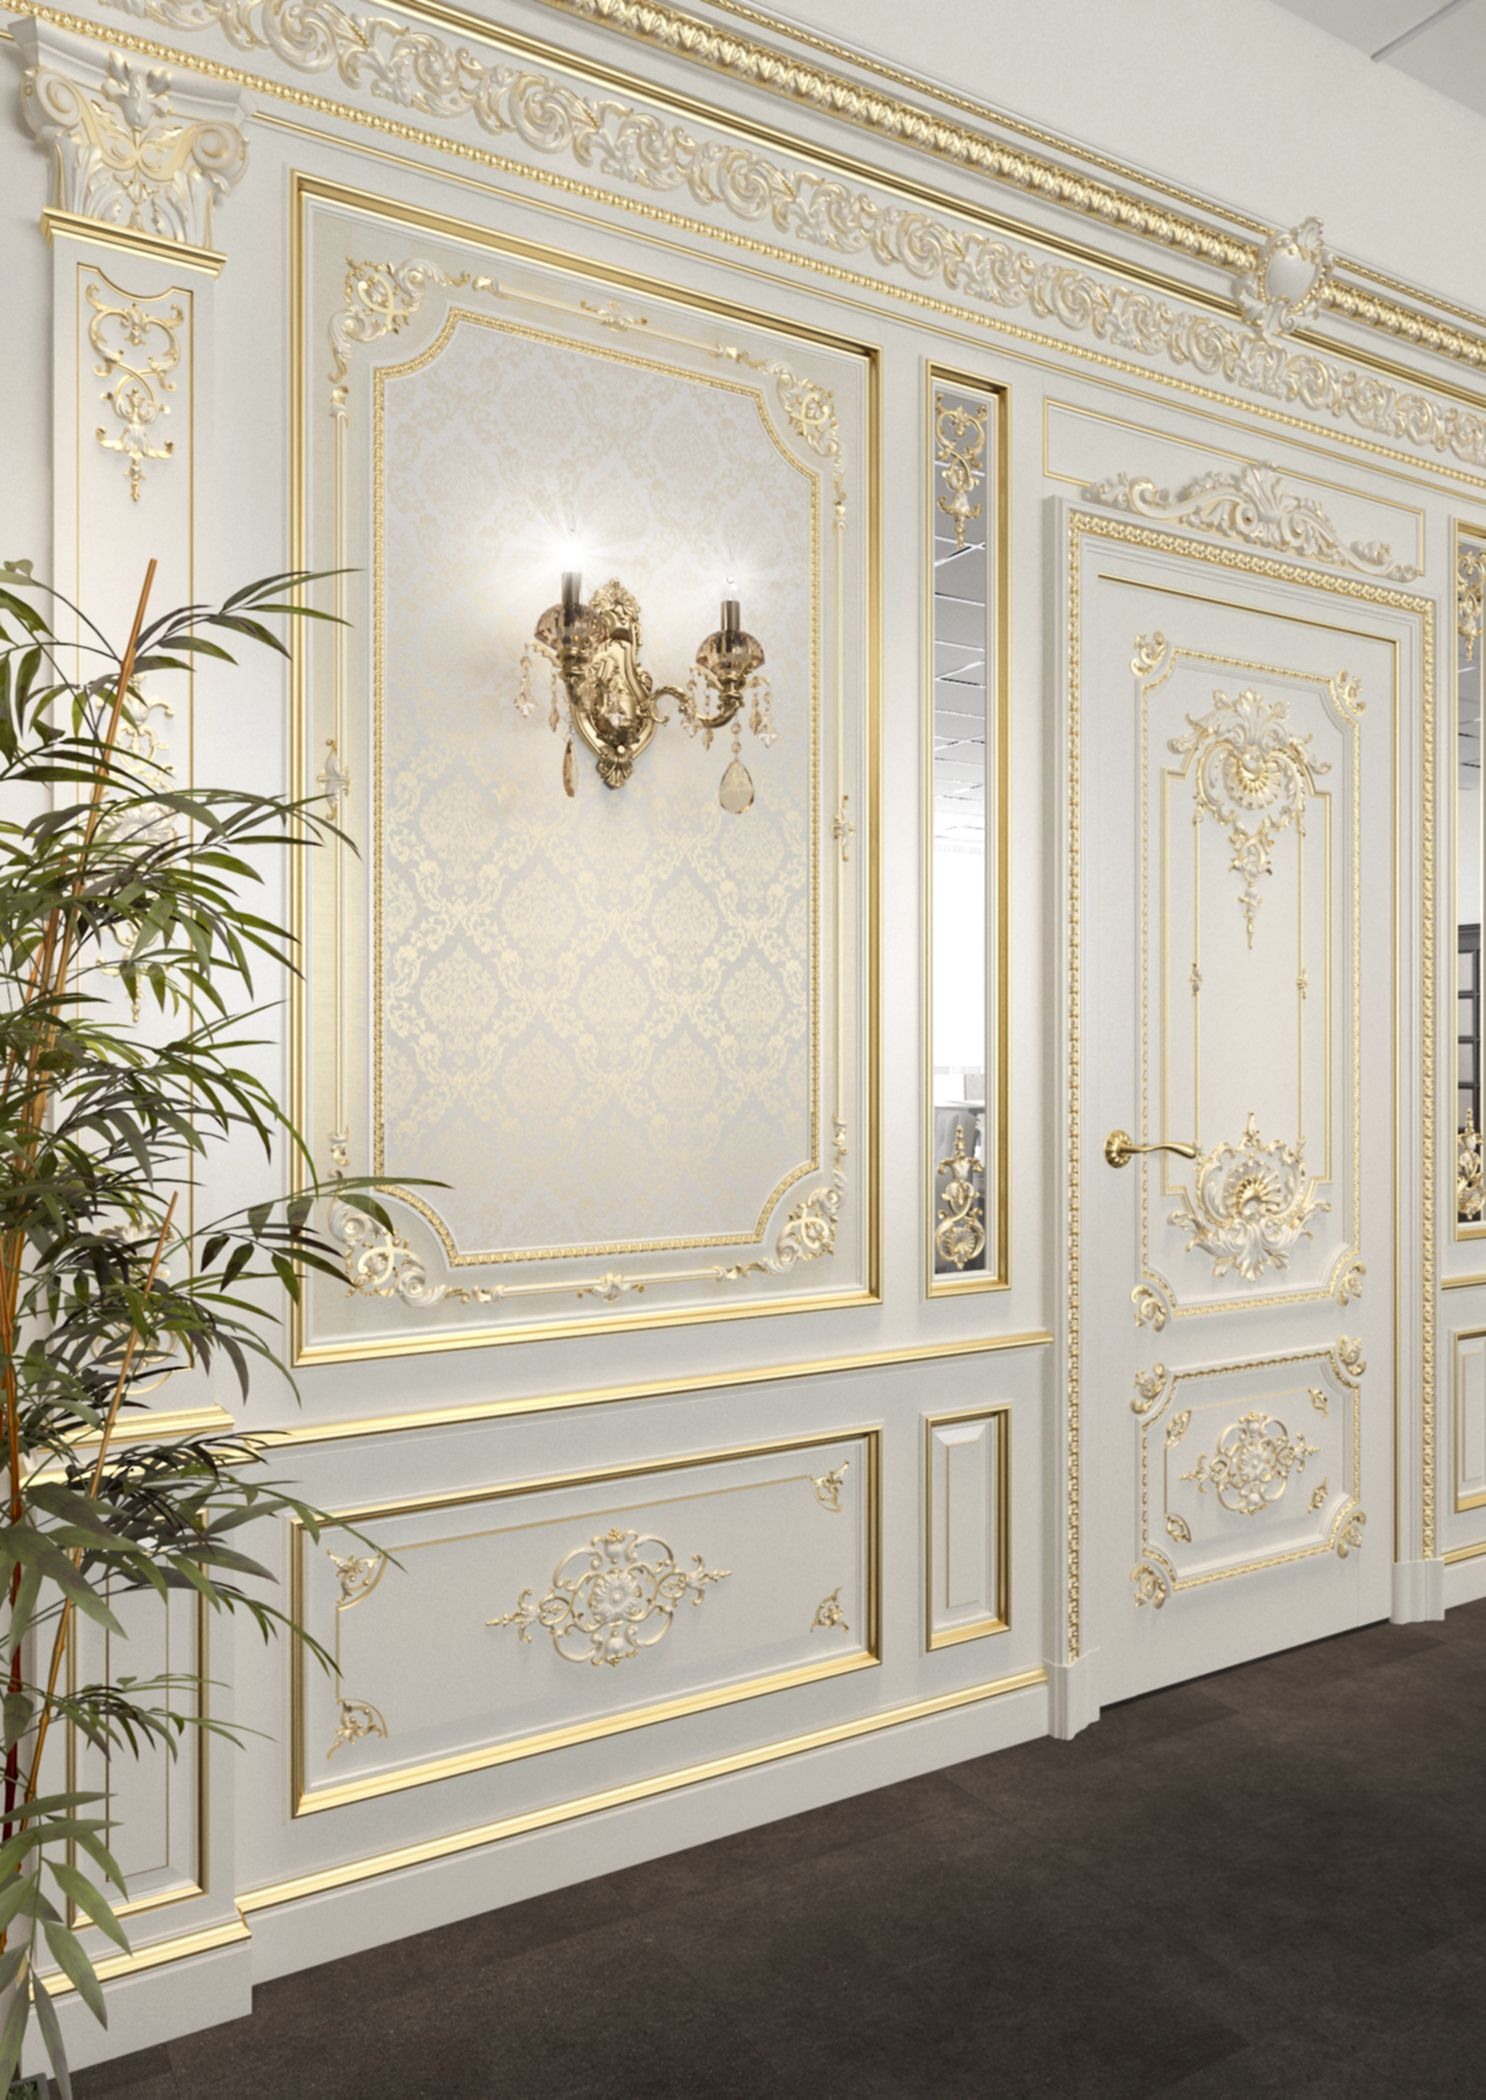 Wall panels for interior design in a classic style